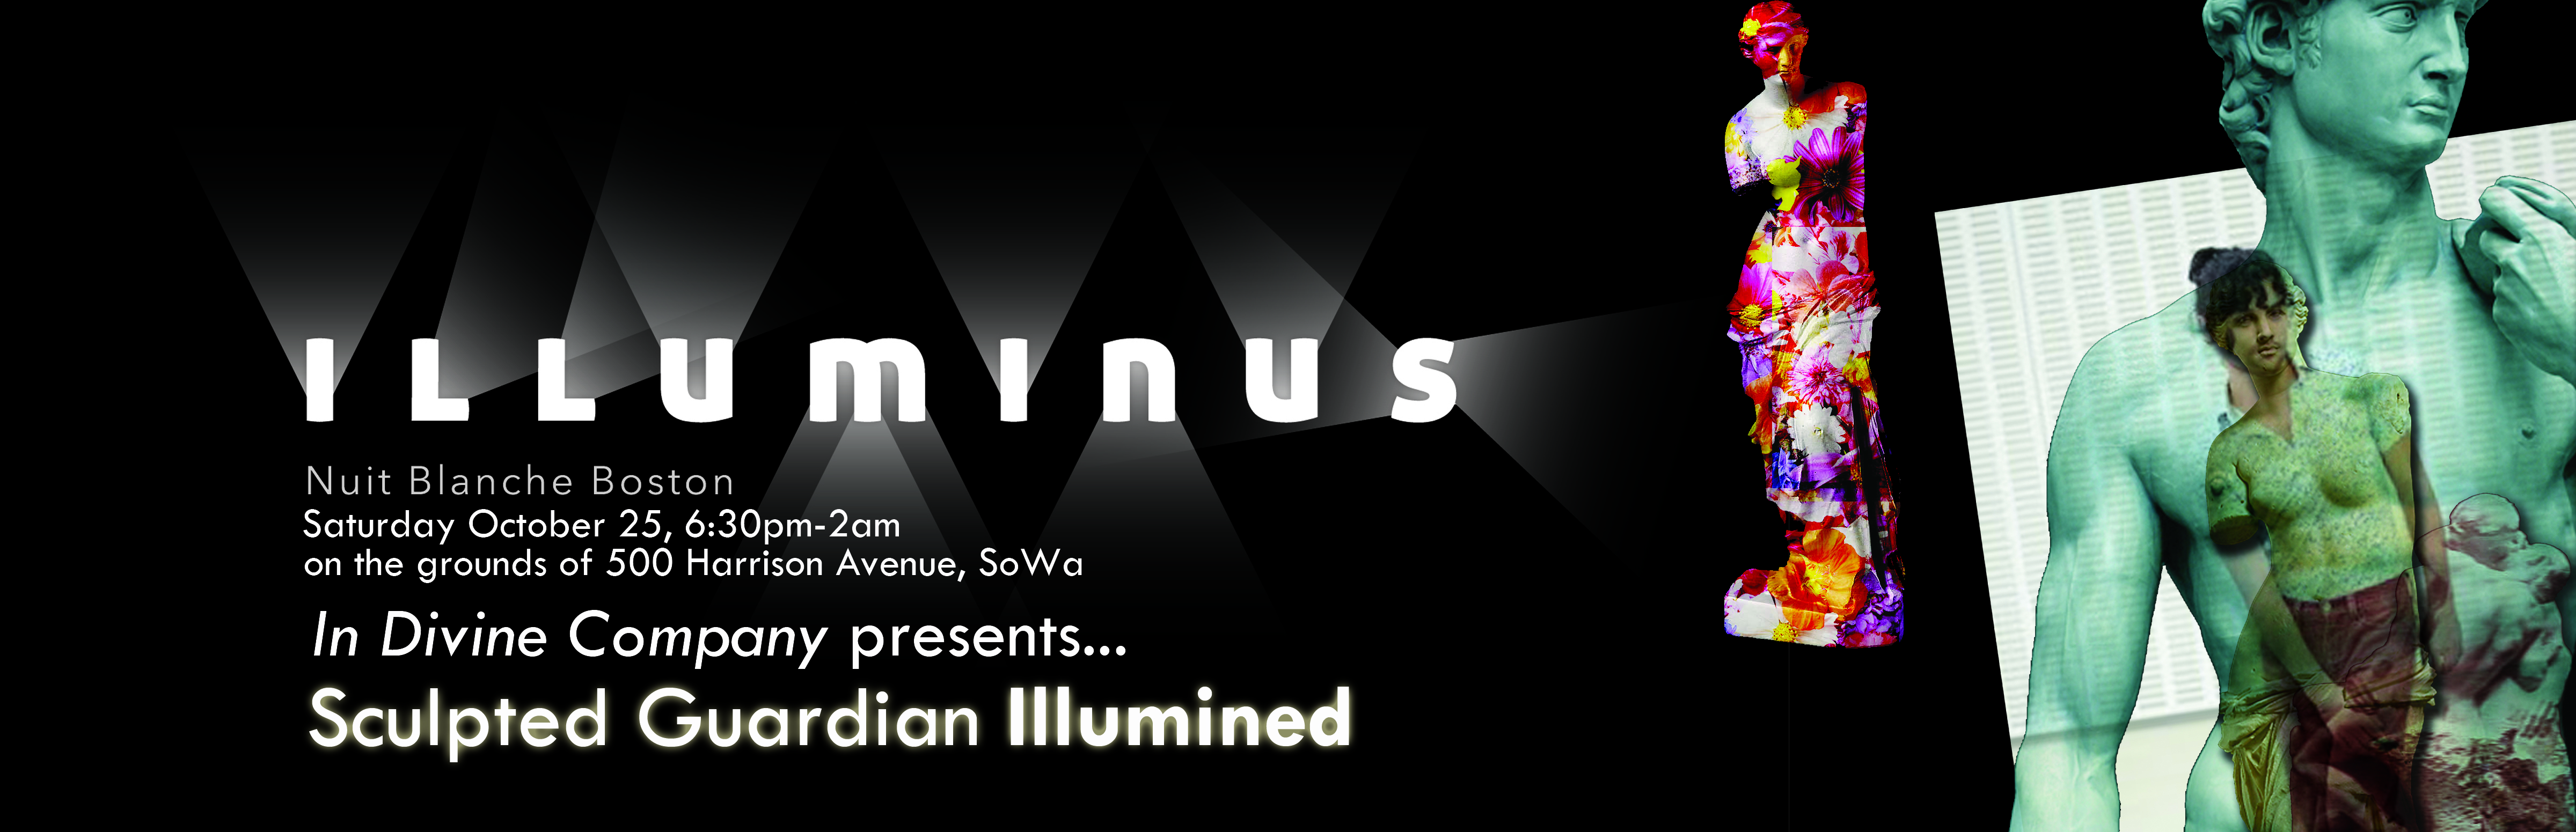 "ILLUMINUS – ""Sculpted Guardian Illumined"""